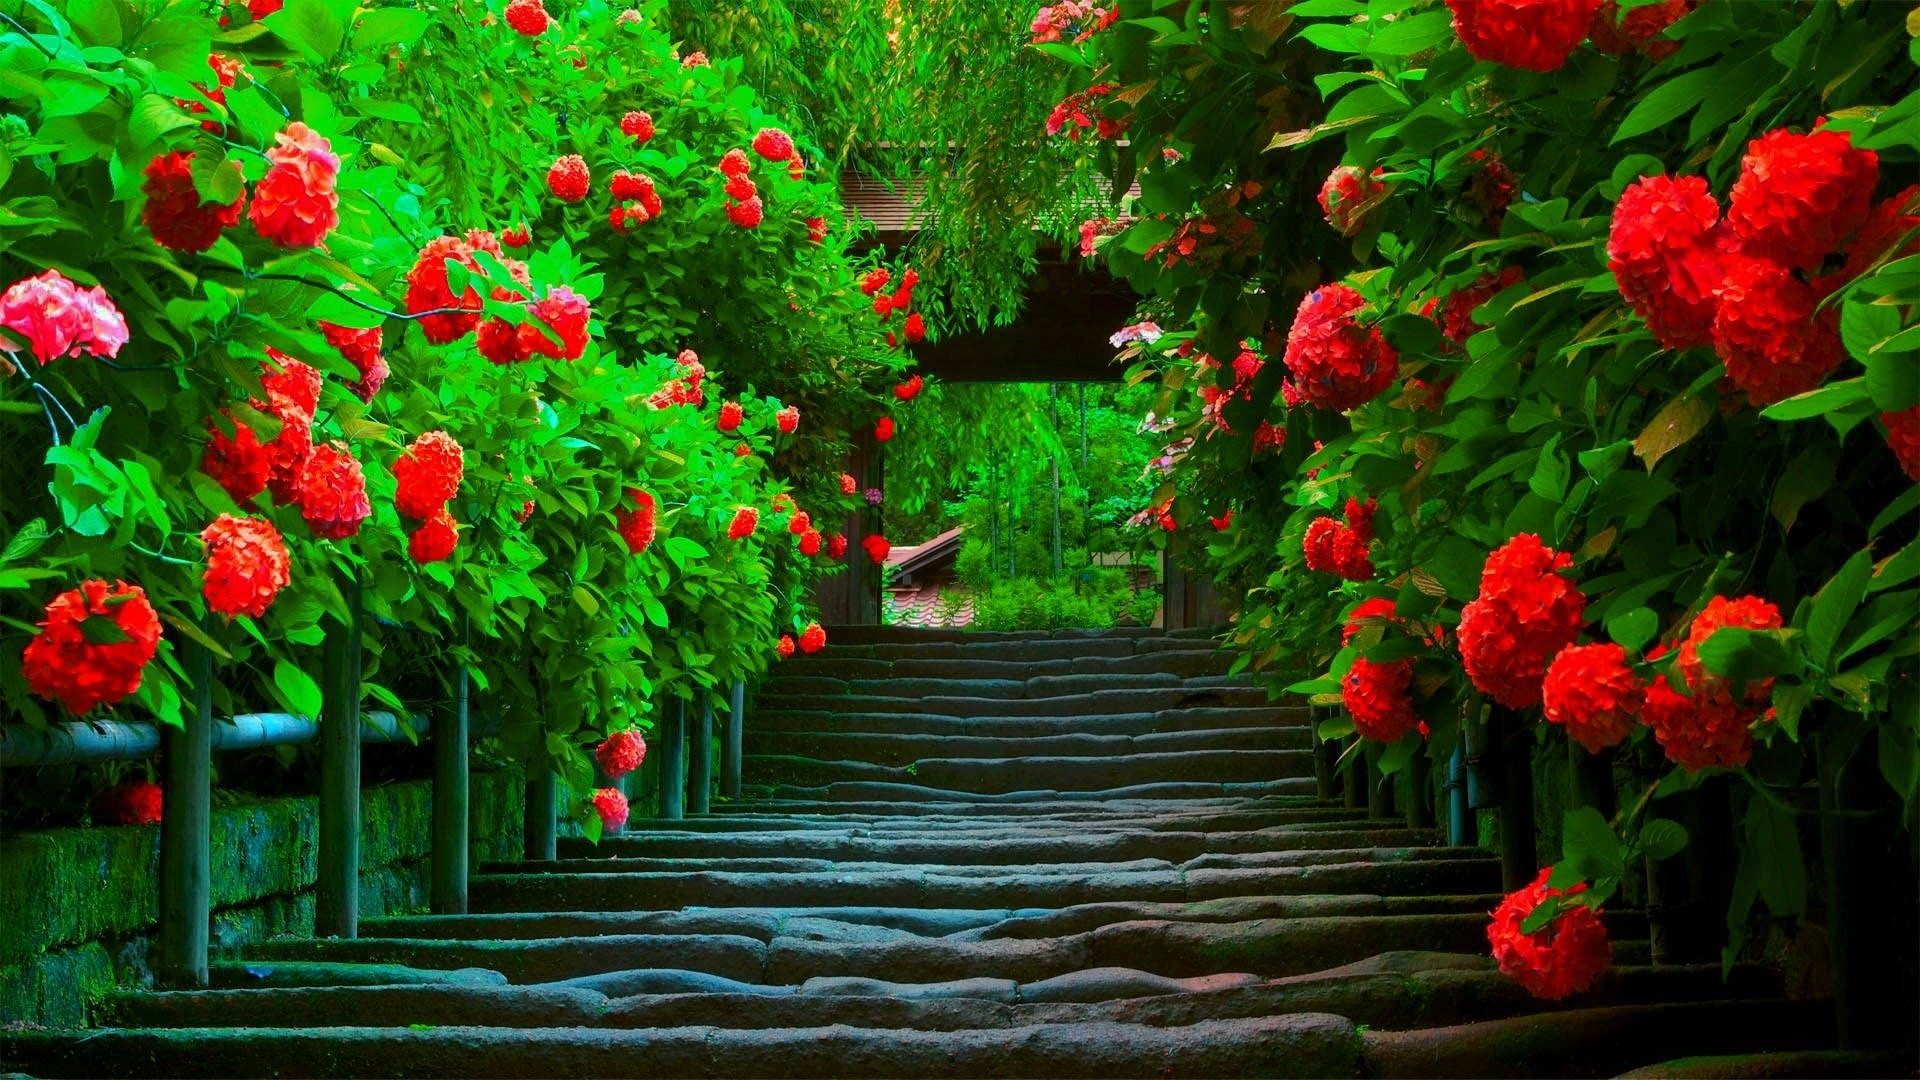 Res: 1920x1080, beautiful love wallpapers for desktop full screen flowers flower spring  nature splendor bright paradise green beautiful red path colors wallpapers  hd 1080p